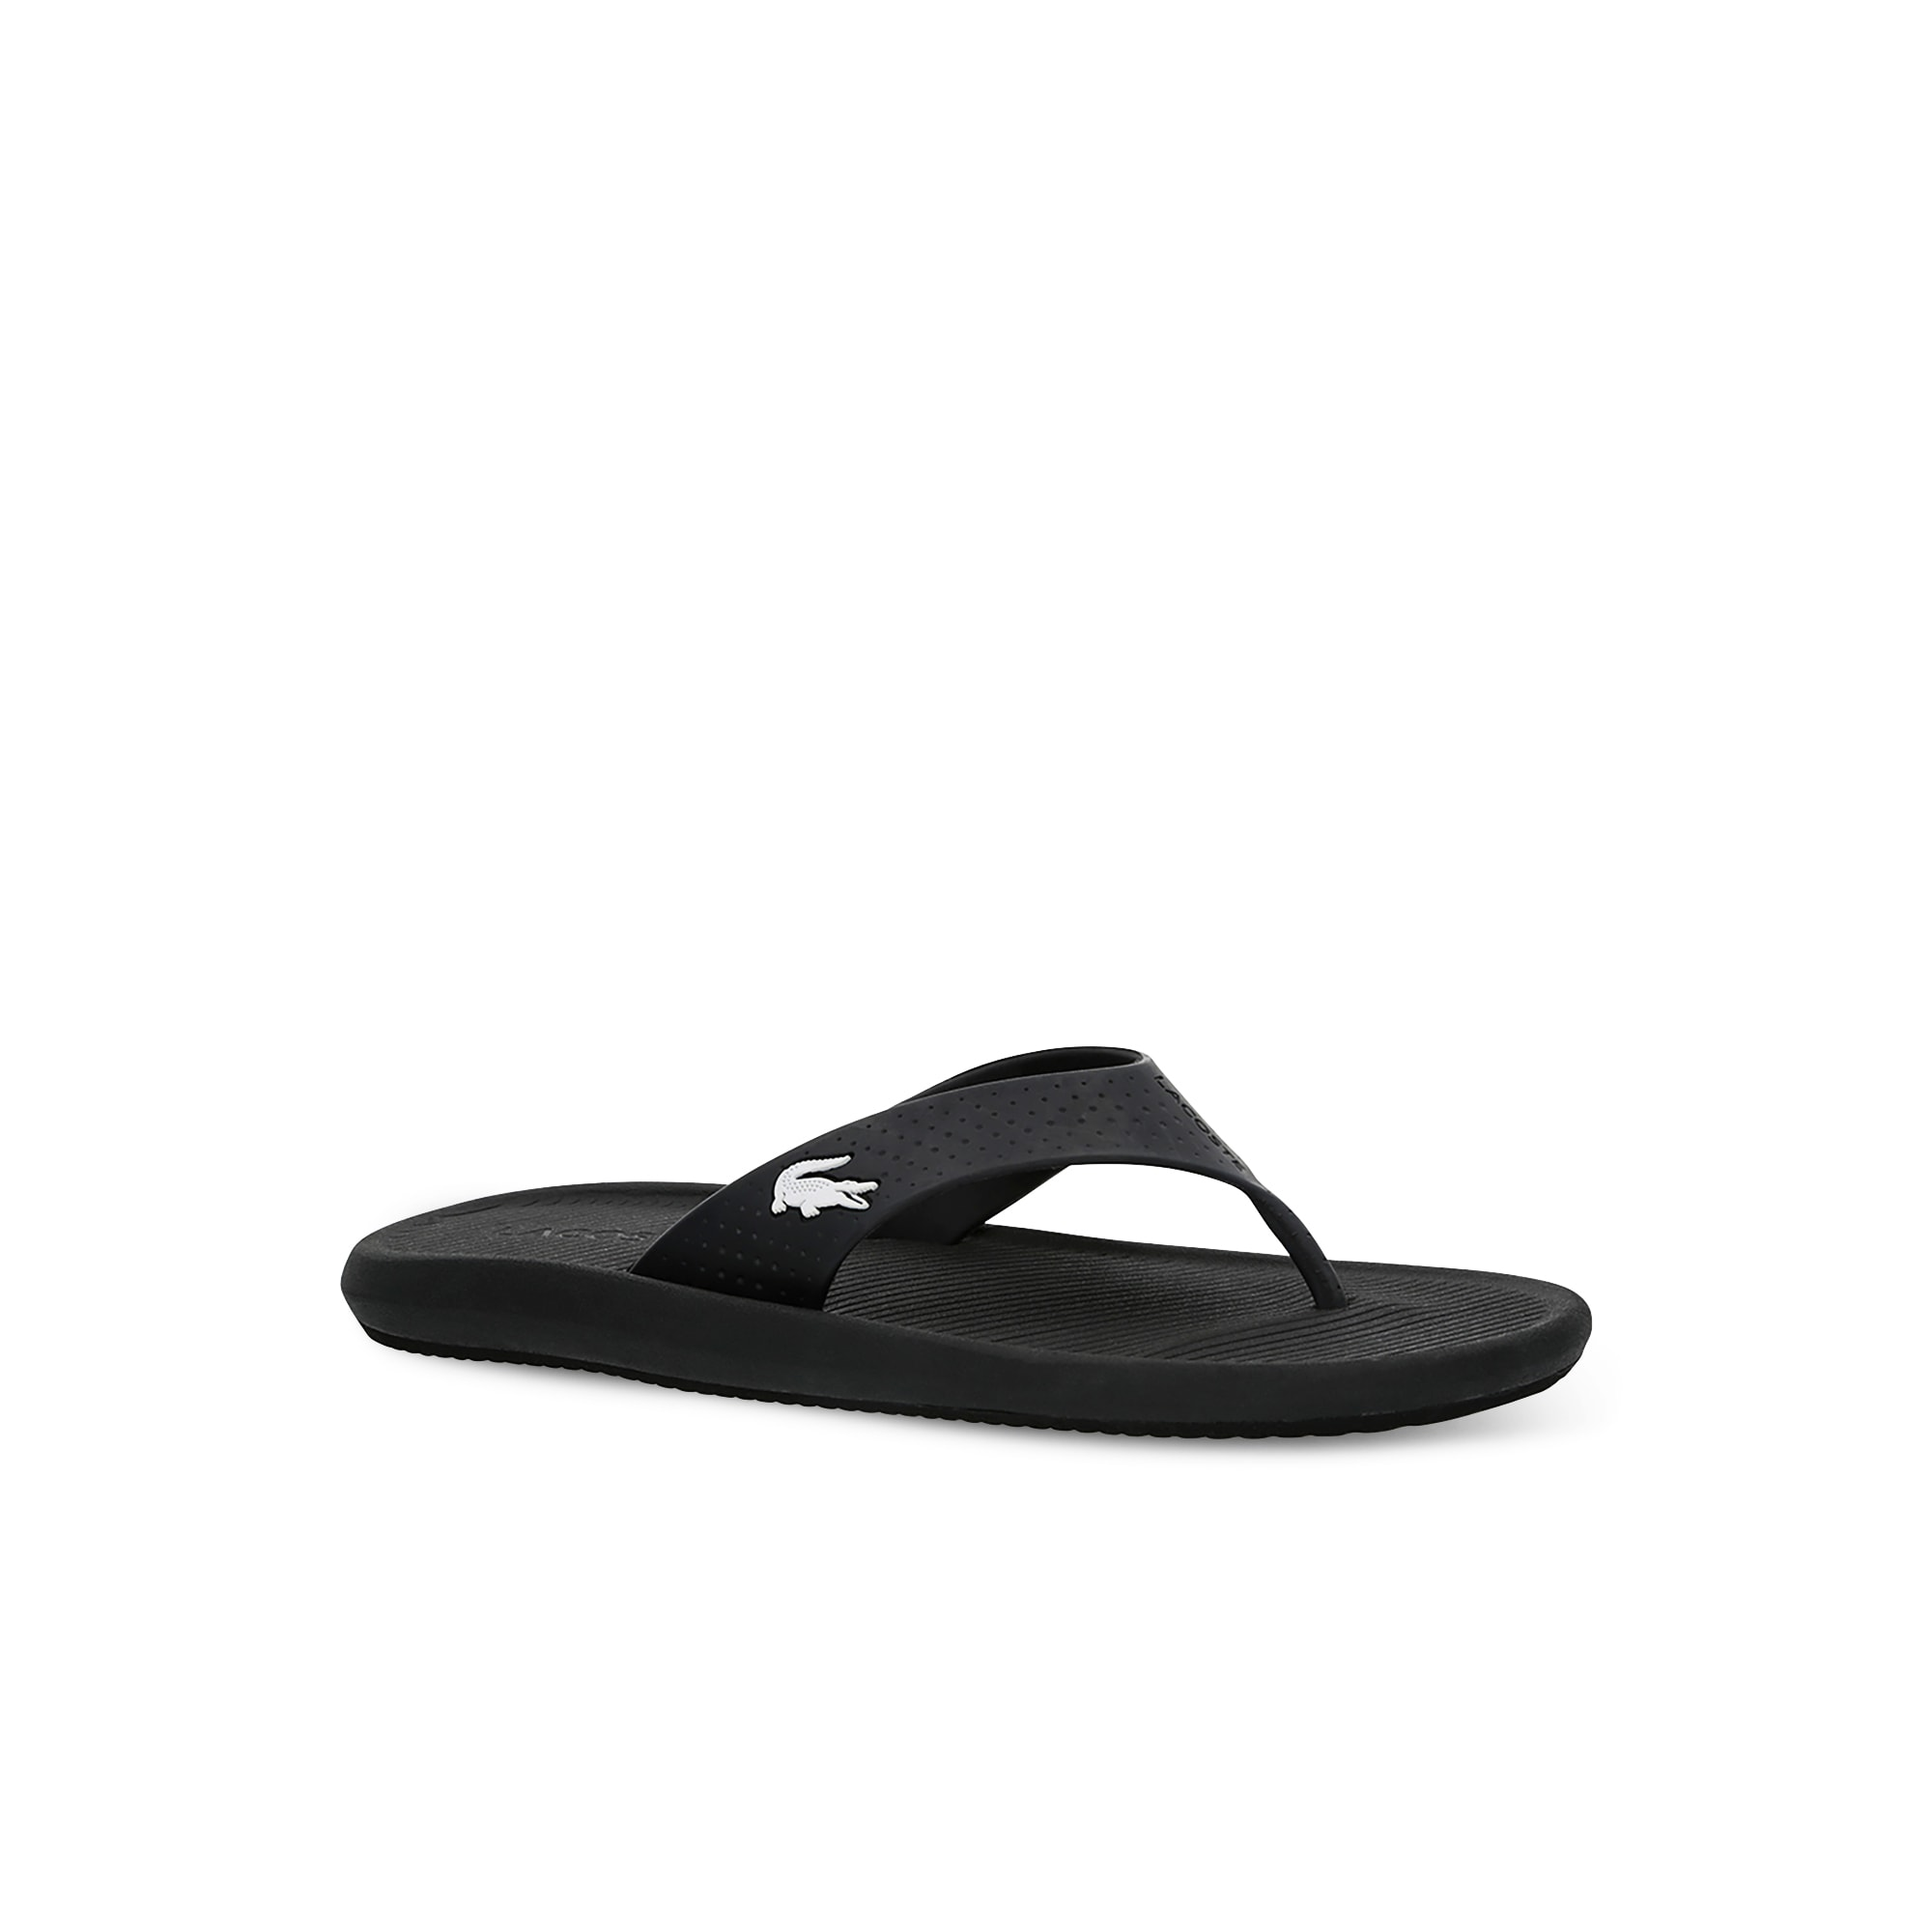 d5b6341d3 Flip-flops collection